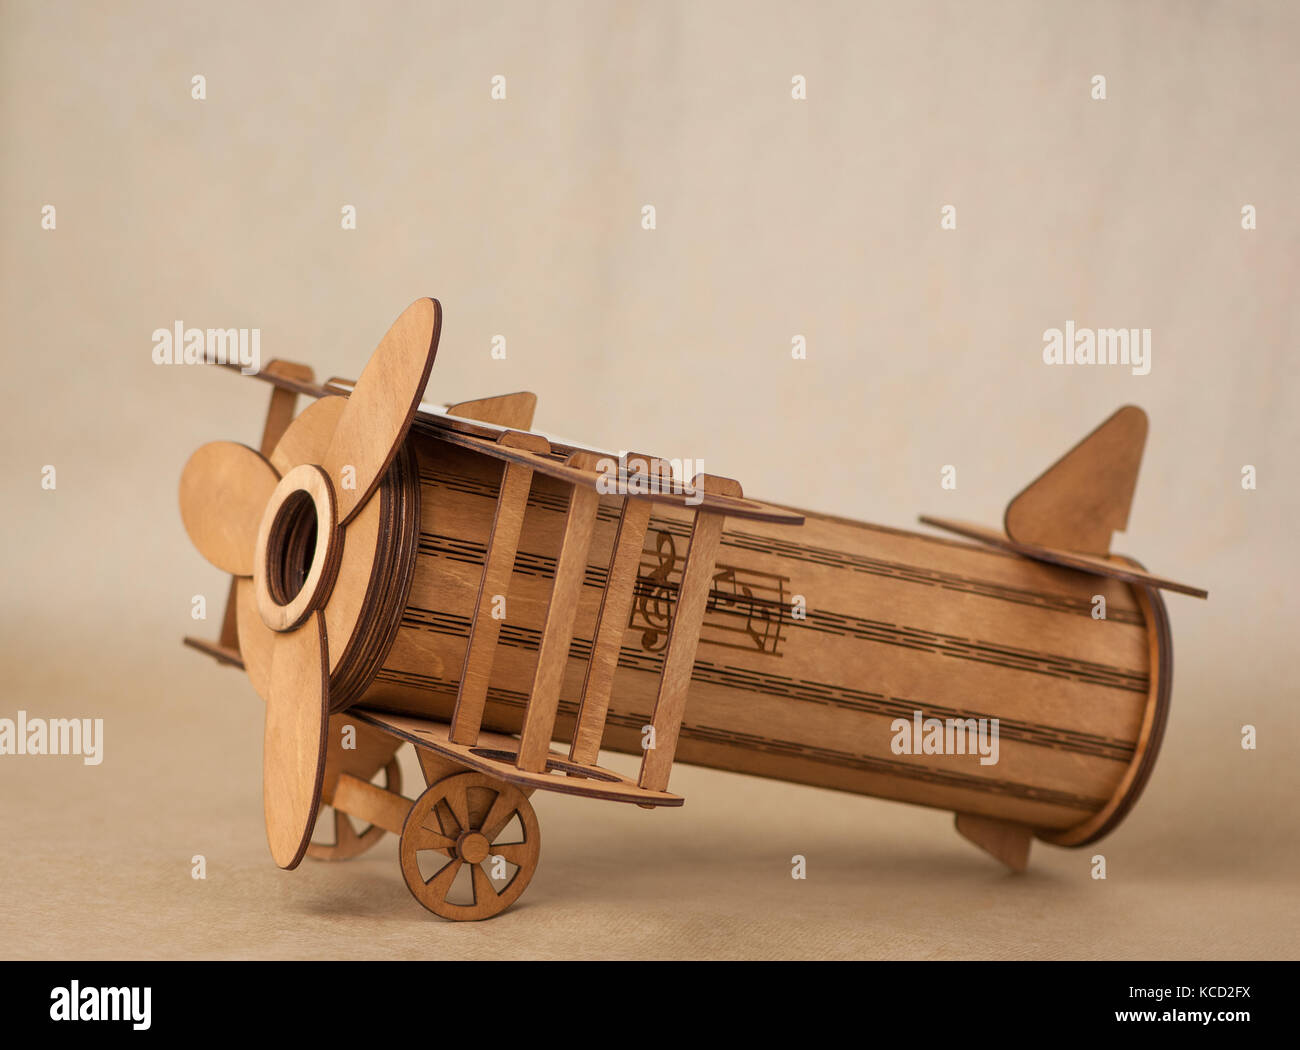 Vintage Toy Plane Stock Photos & Vintage Toy Plane Stock Images - Alamy